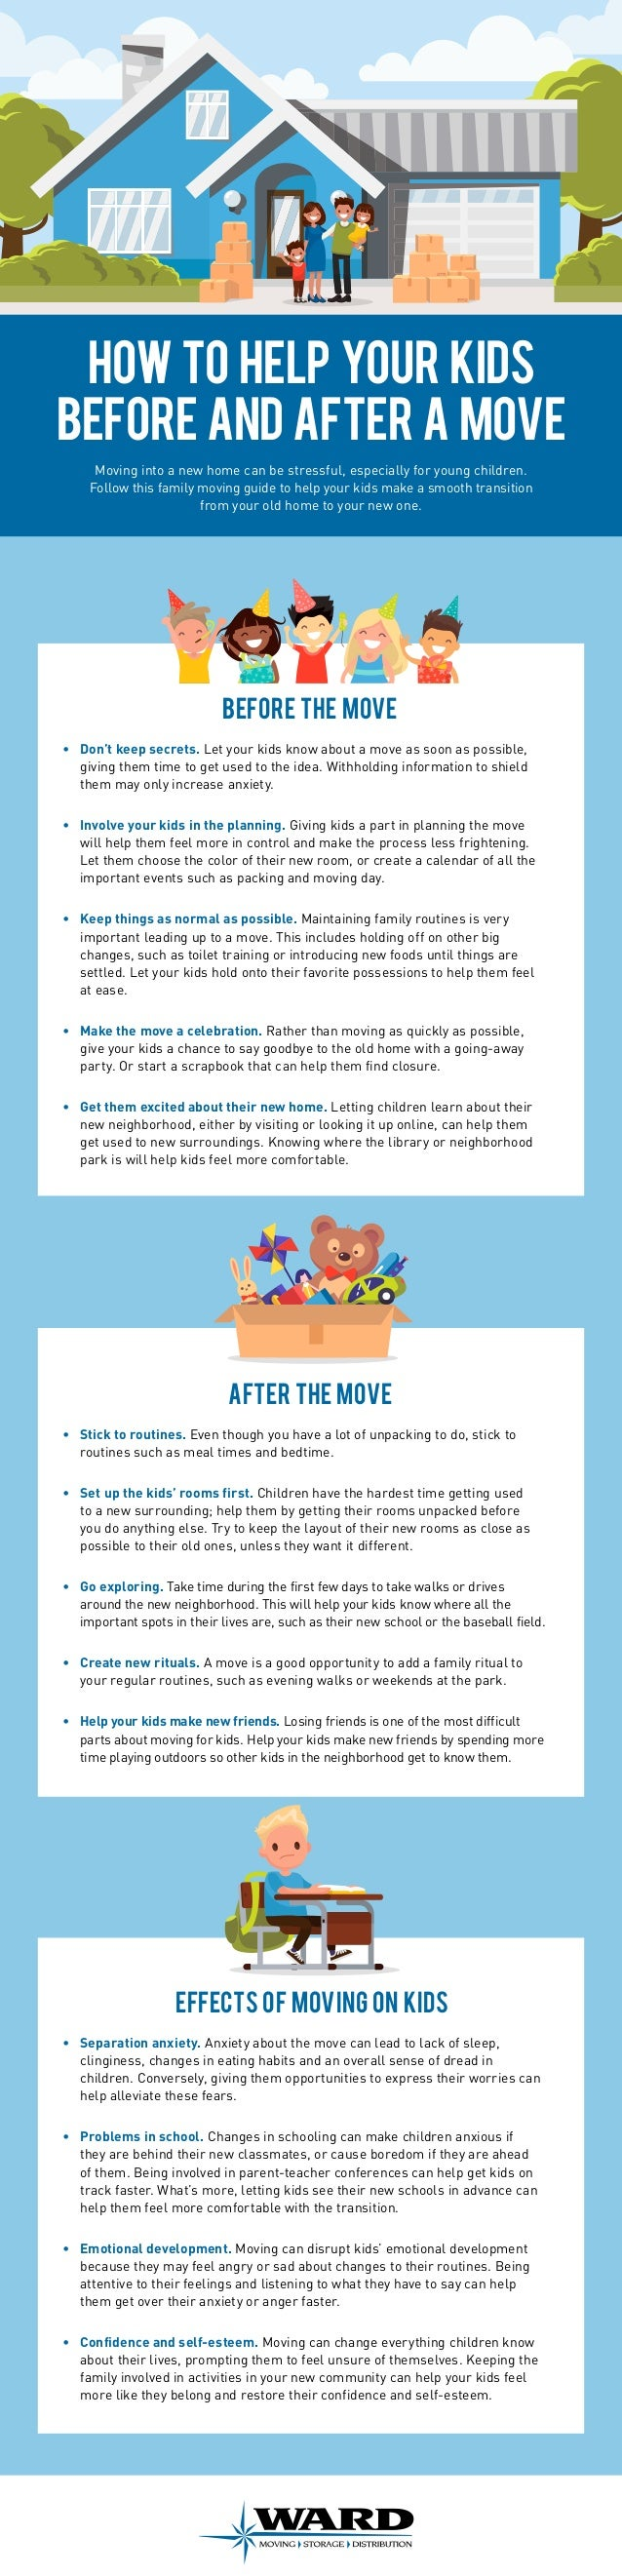 How to Make a Family Move Easier for Your Kids - Learning Liftoff